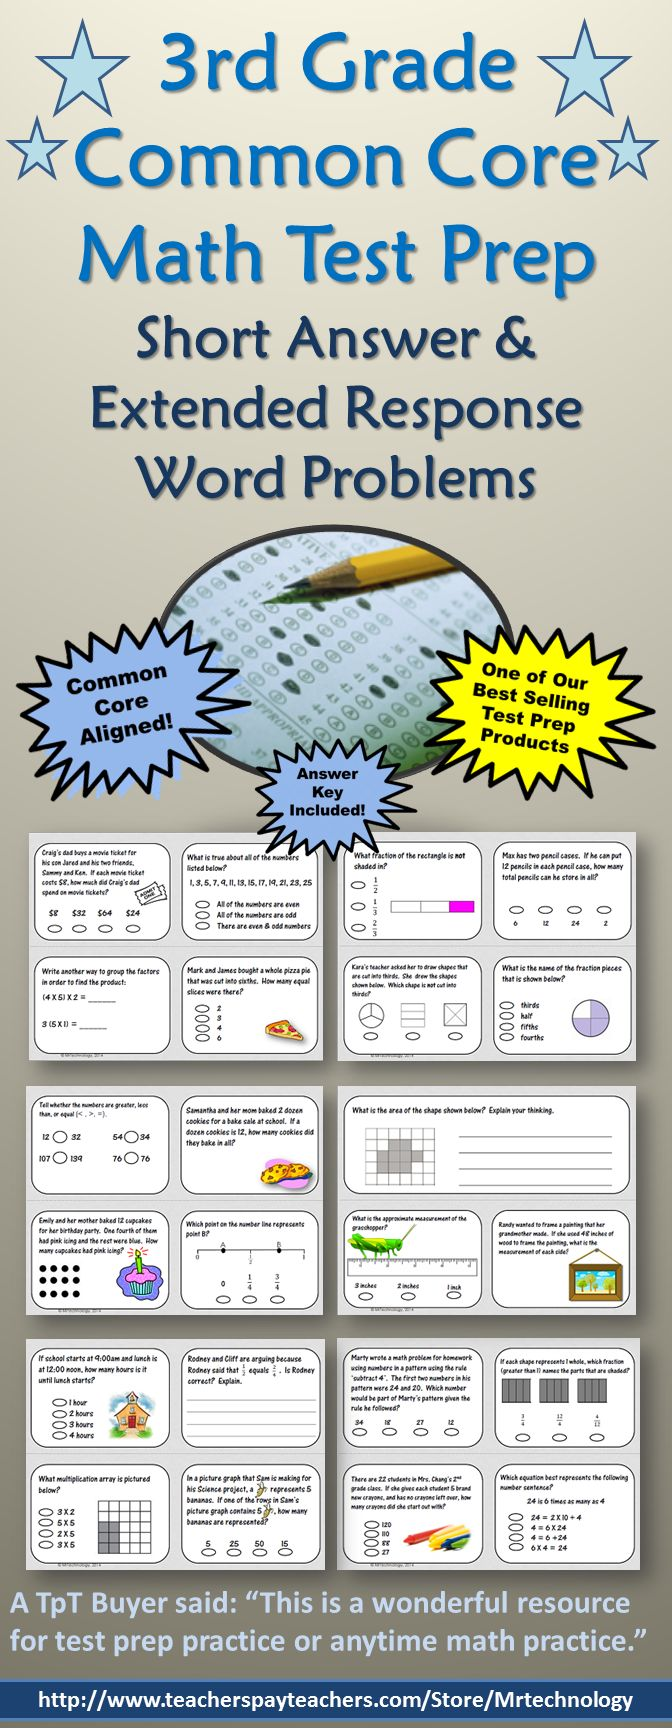 469 best 3rd grade- math images on Pinterest | Learning, Activities ...